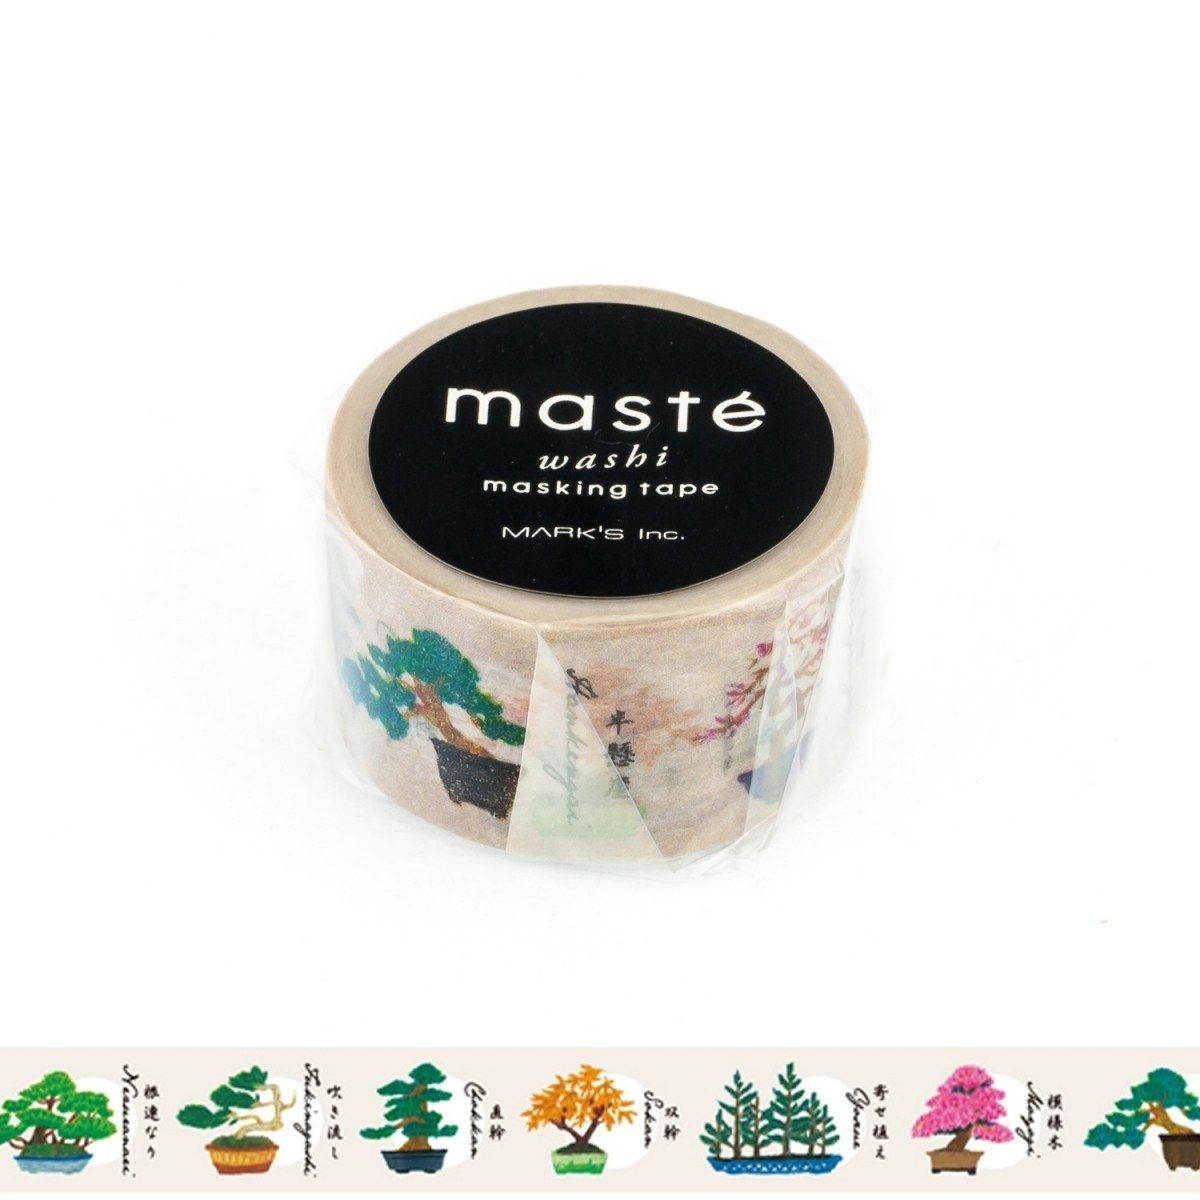 WASHI TAPE MASTÉ BONSAI